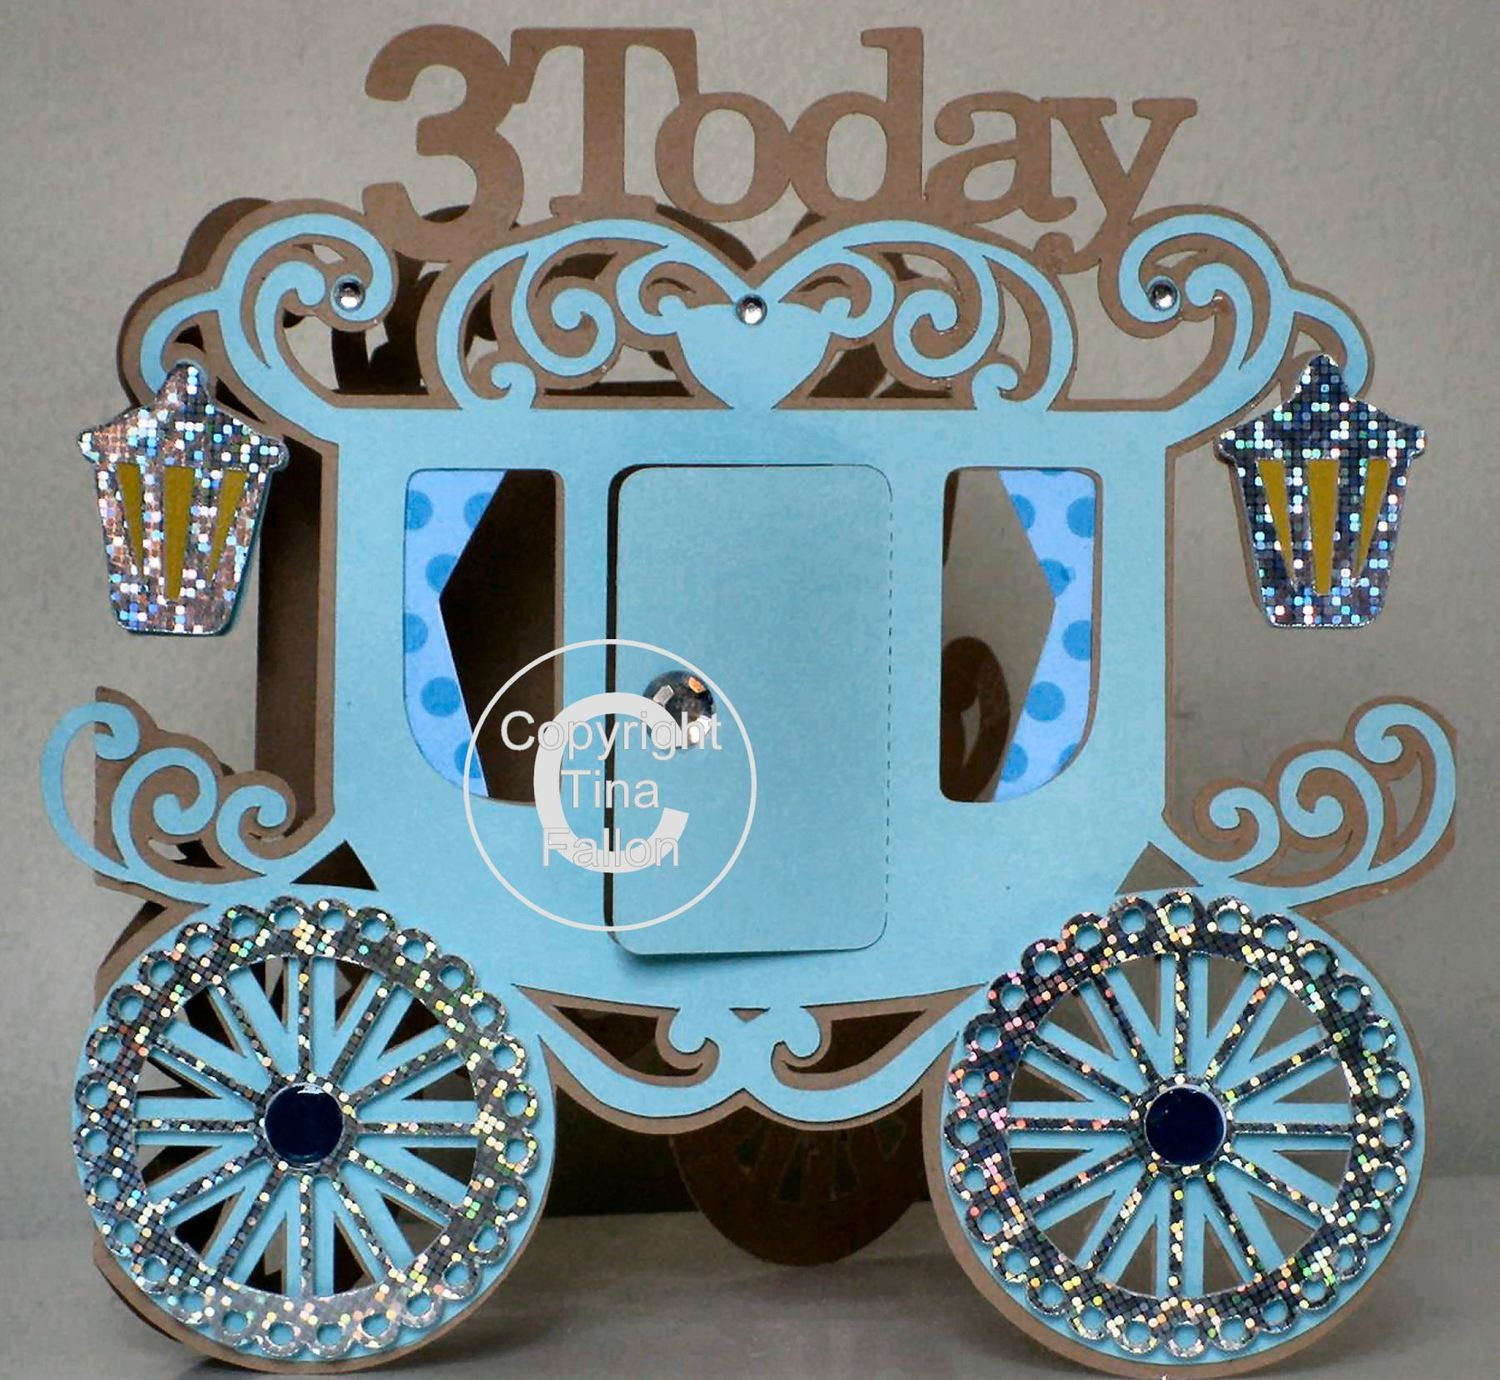 Princess Carriage 3 today Card Template